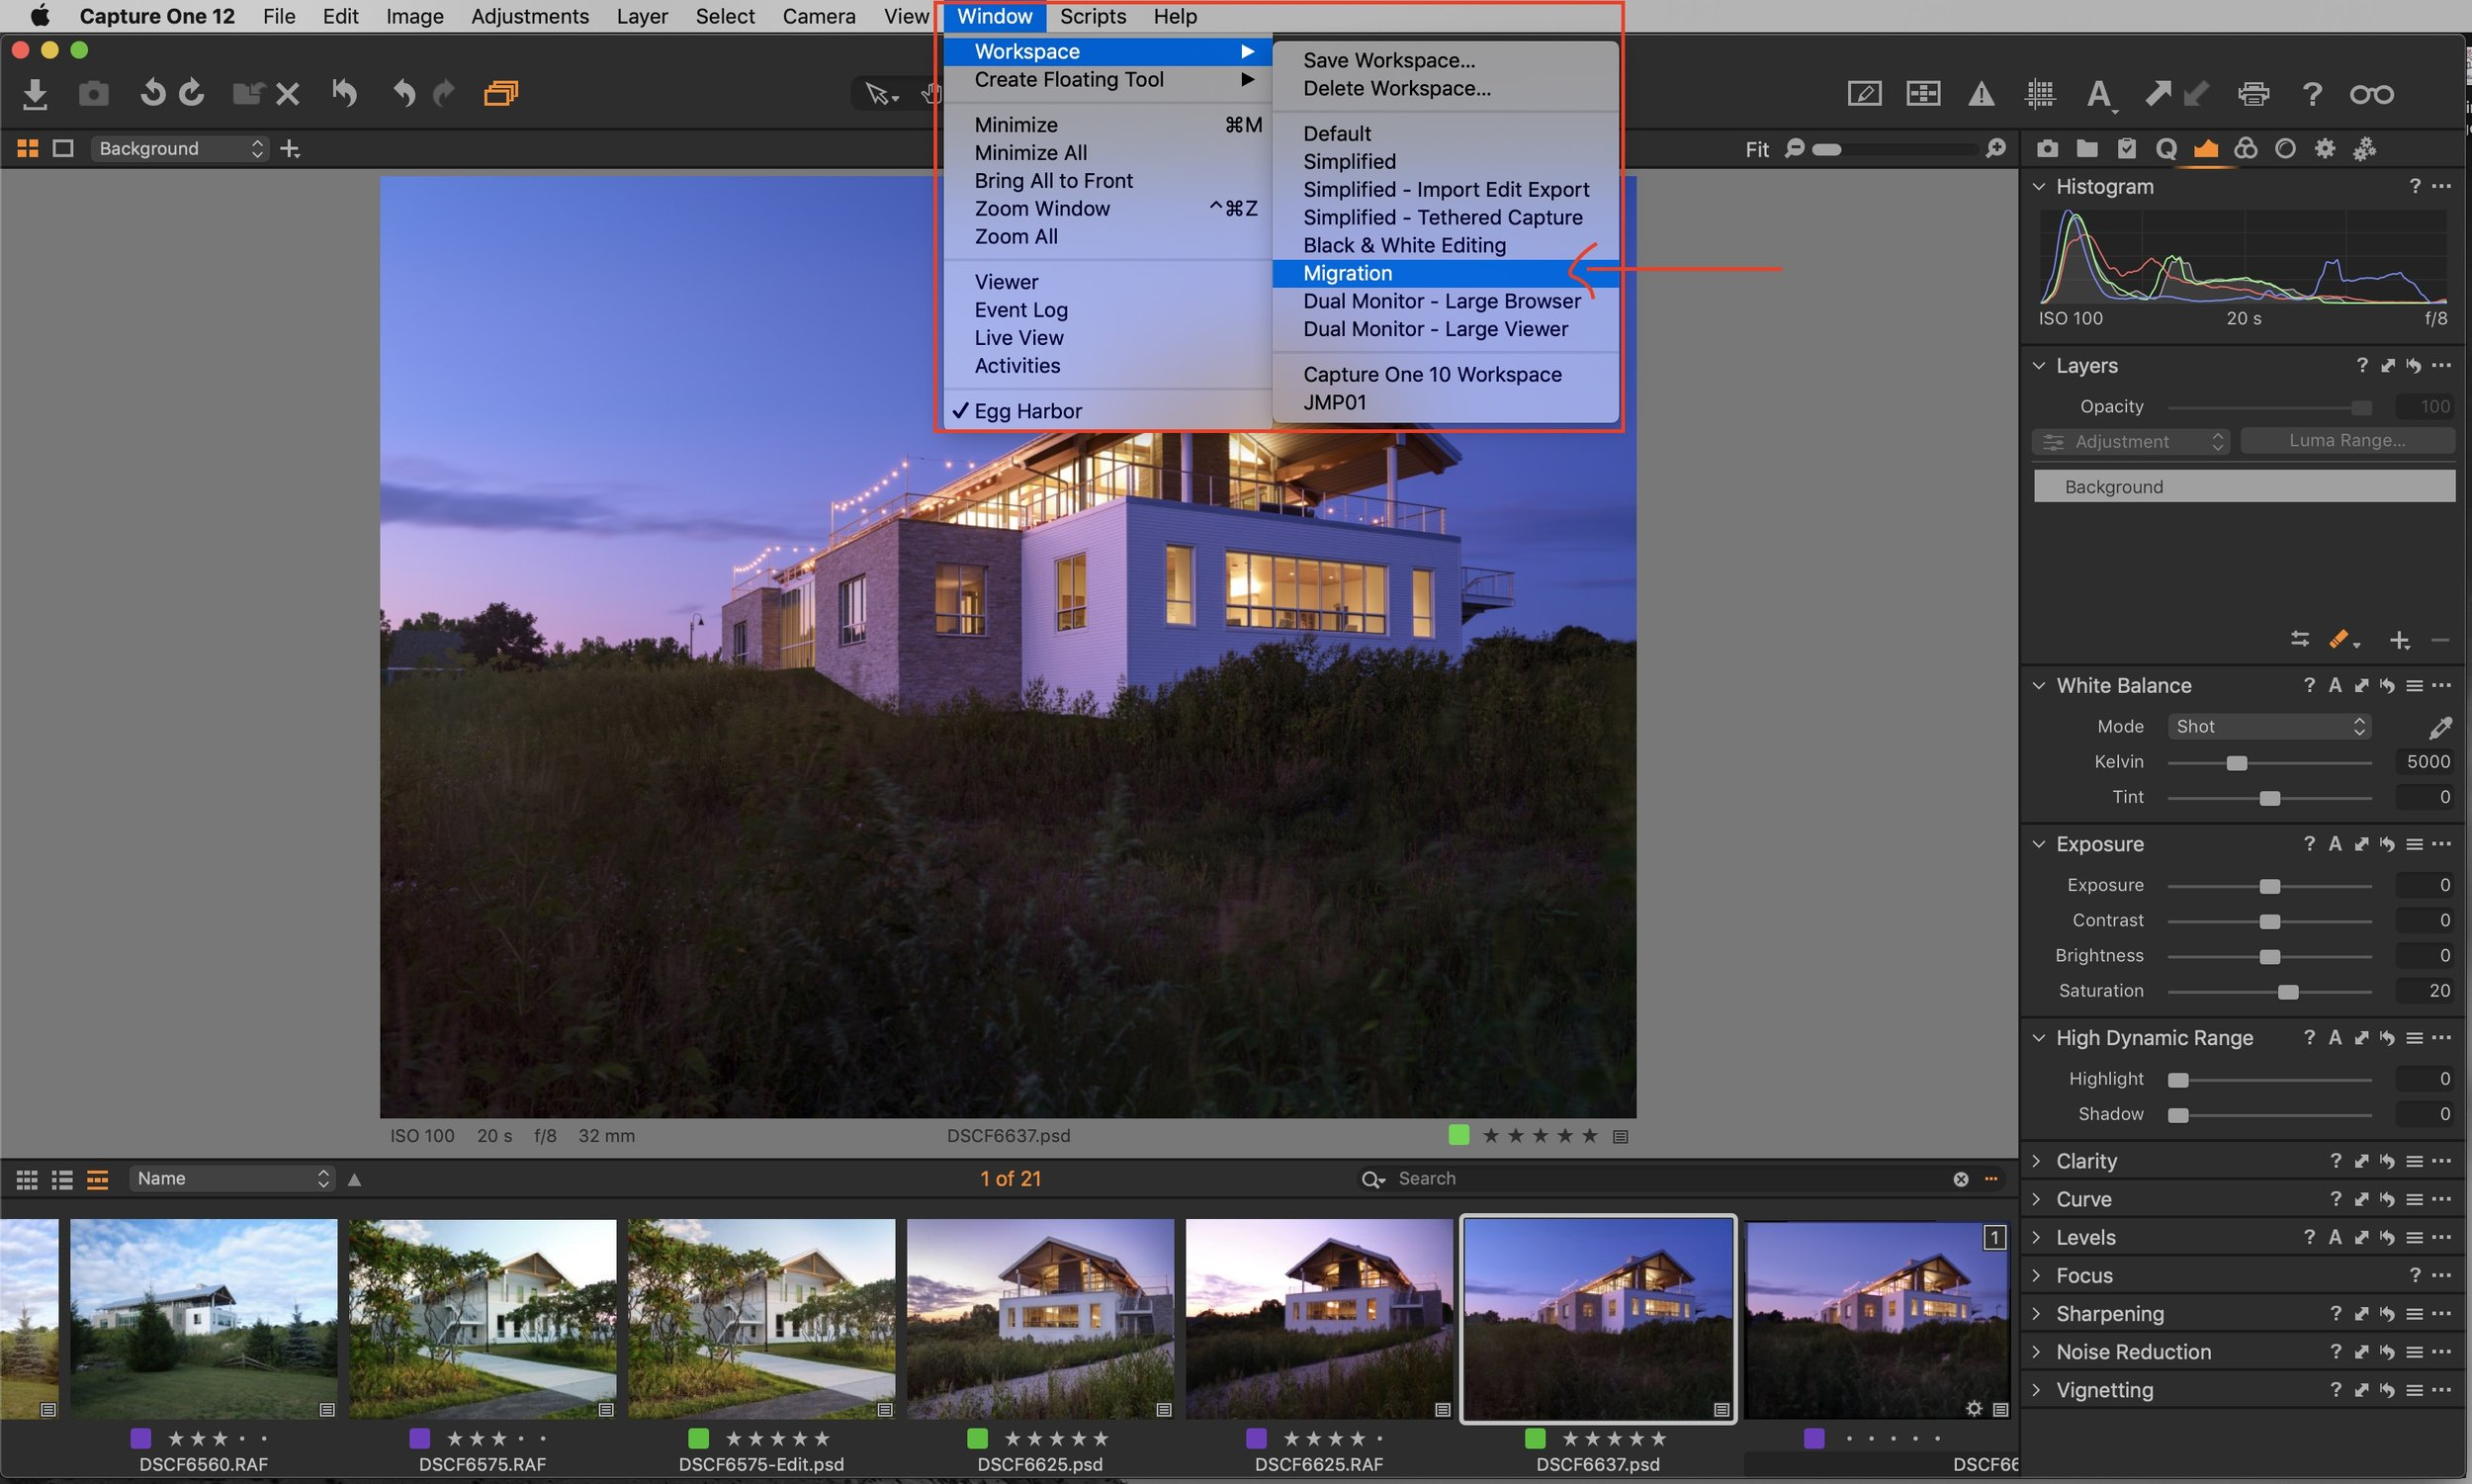 To learn more about how to customize your workspace, see the learning hub over at    Capture One   .